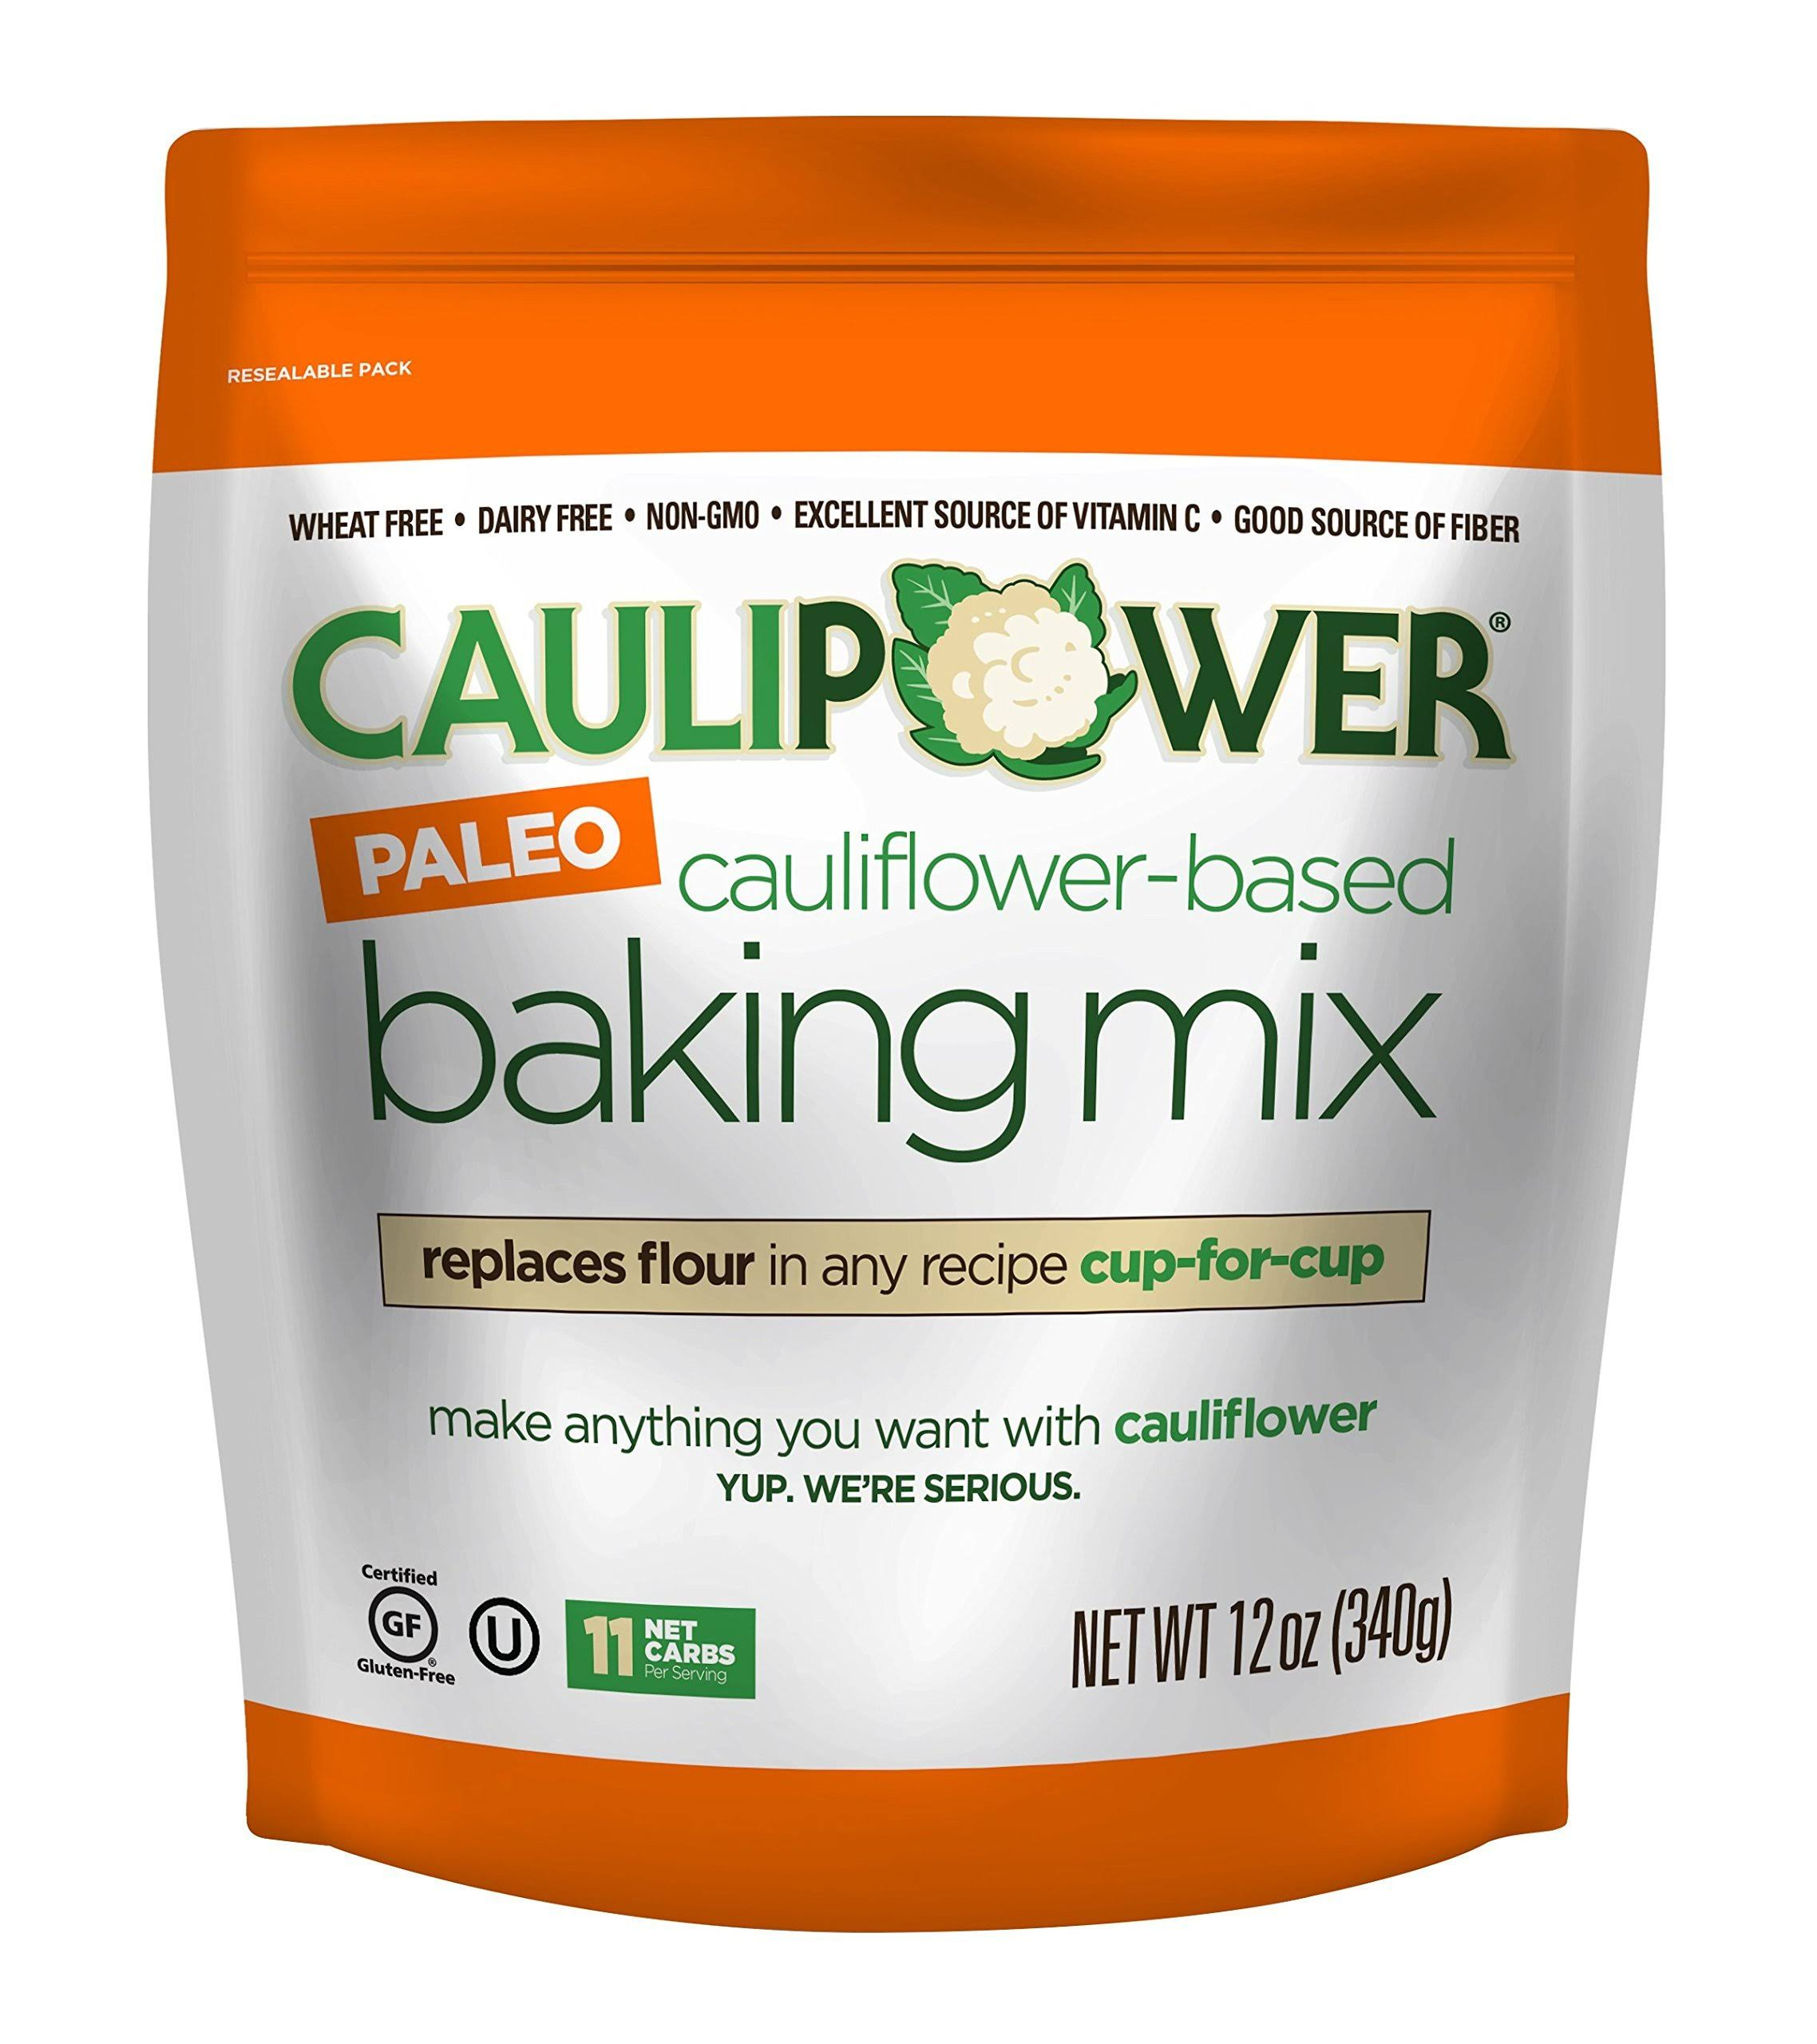 Caulipower Baking Mix, Cauliflower-Based, Paleo - 12 oz